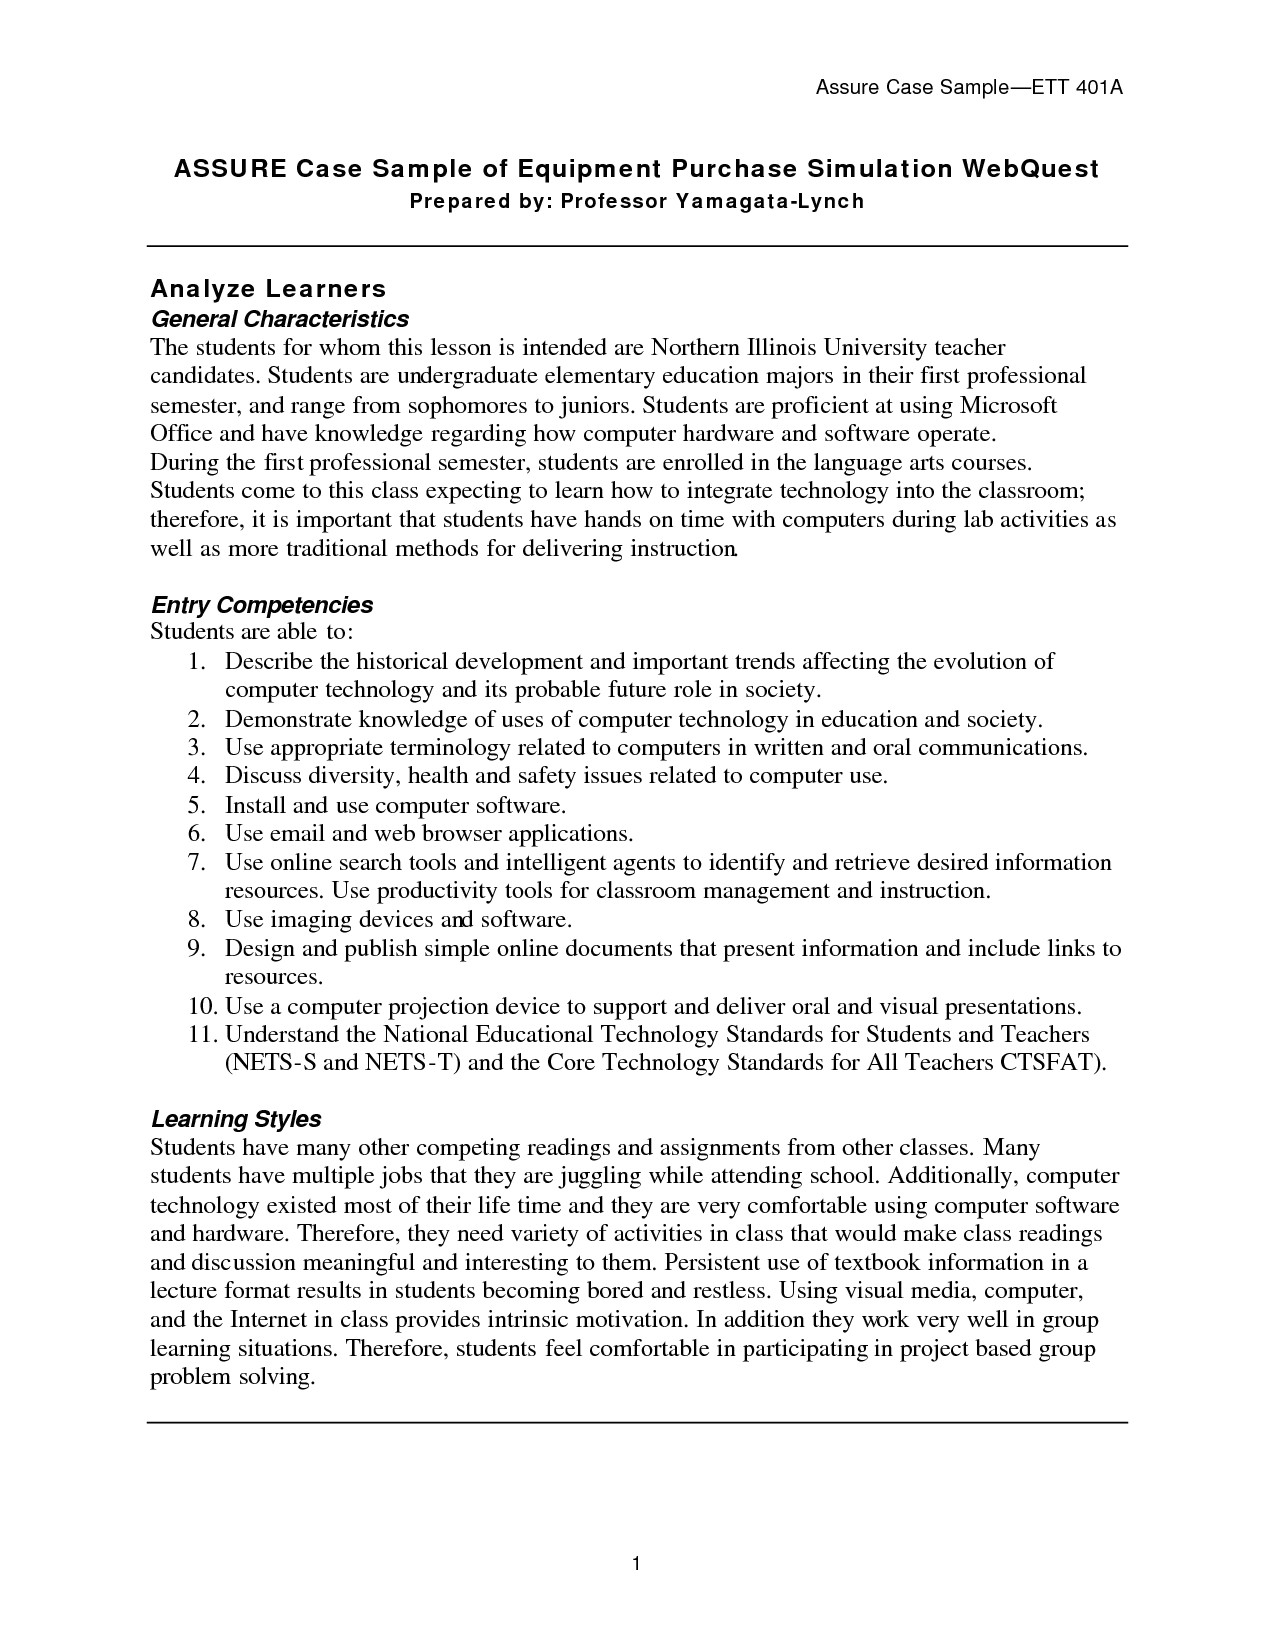 purchase proposal template